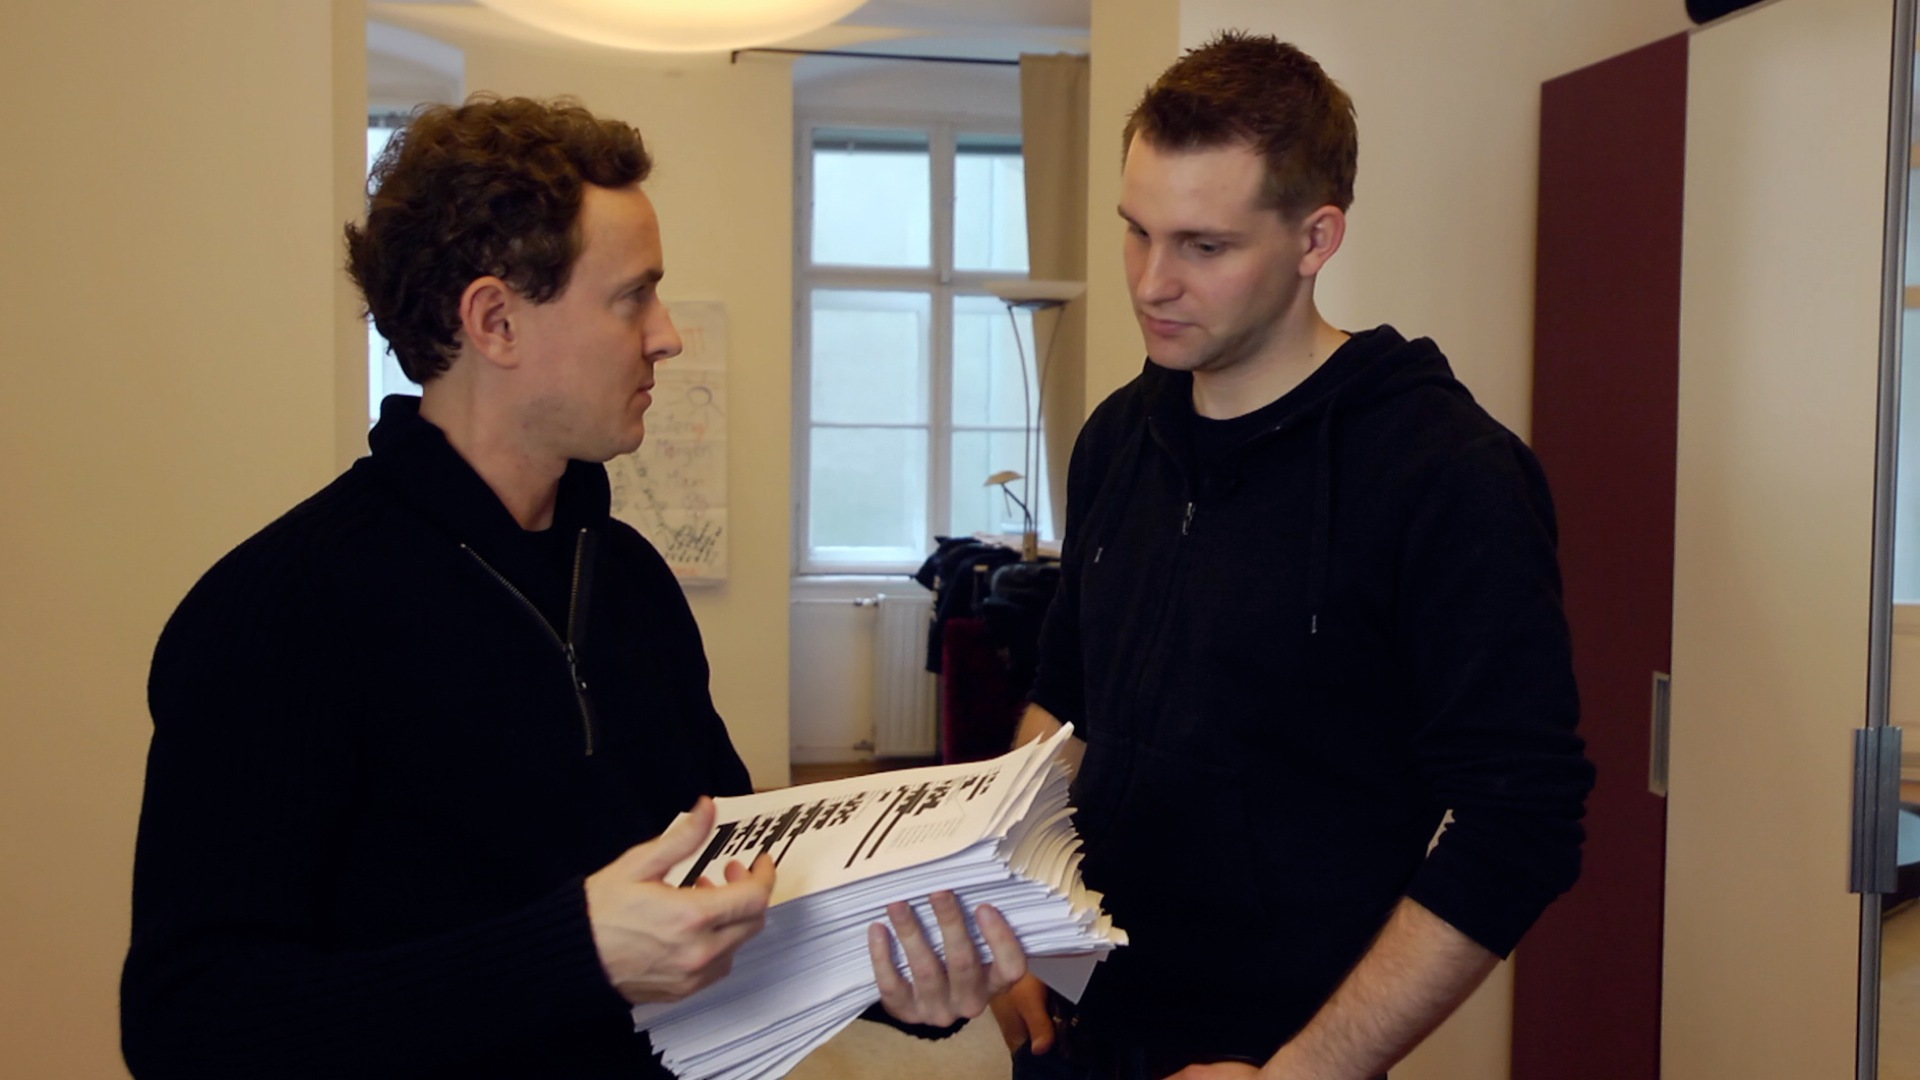 Cullen Hoback and Max Schrems in Terms and Conditions May Apply (2013)